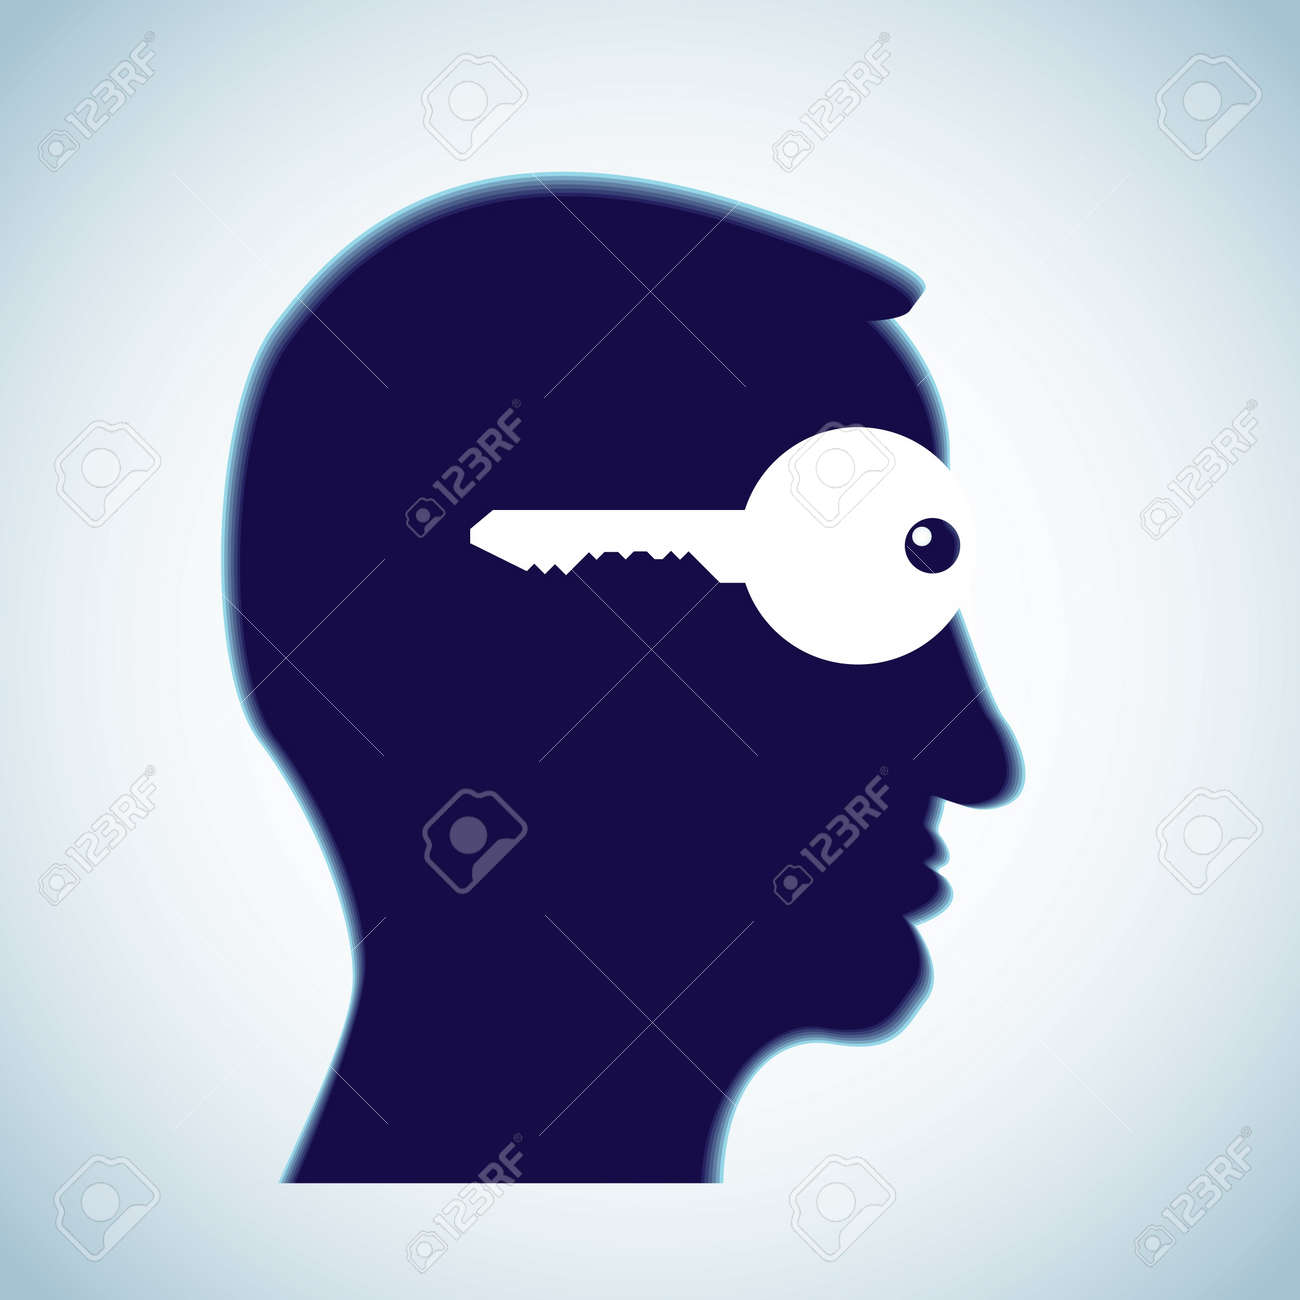 key in head - open mind - illustration Stock Vector - 11904476